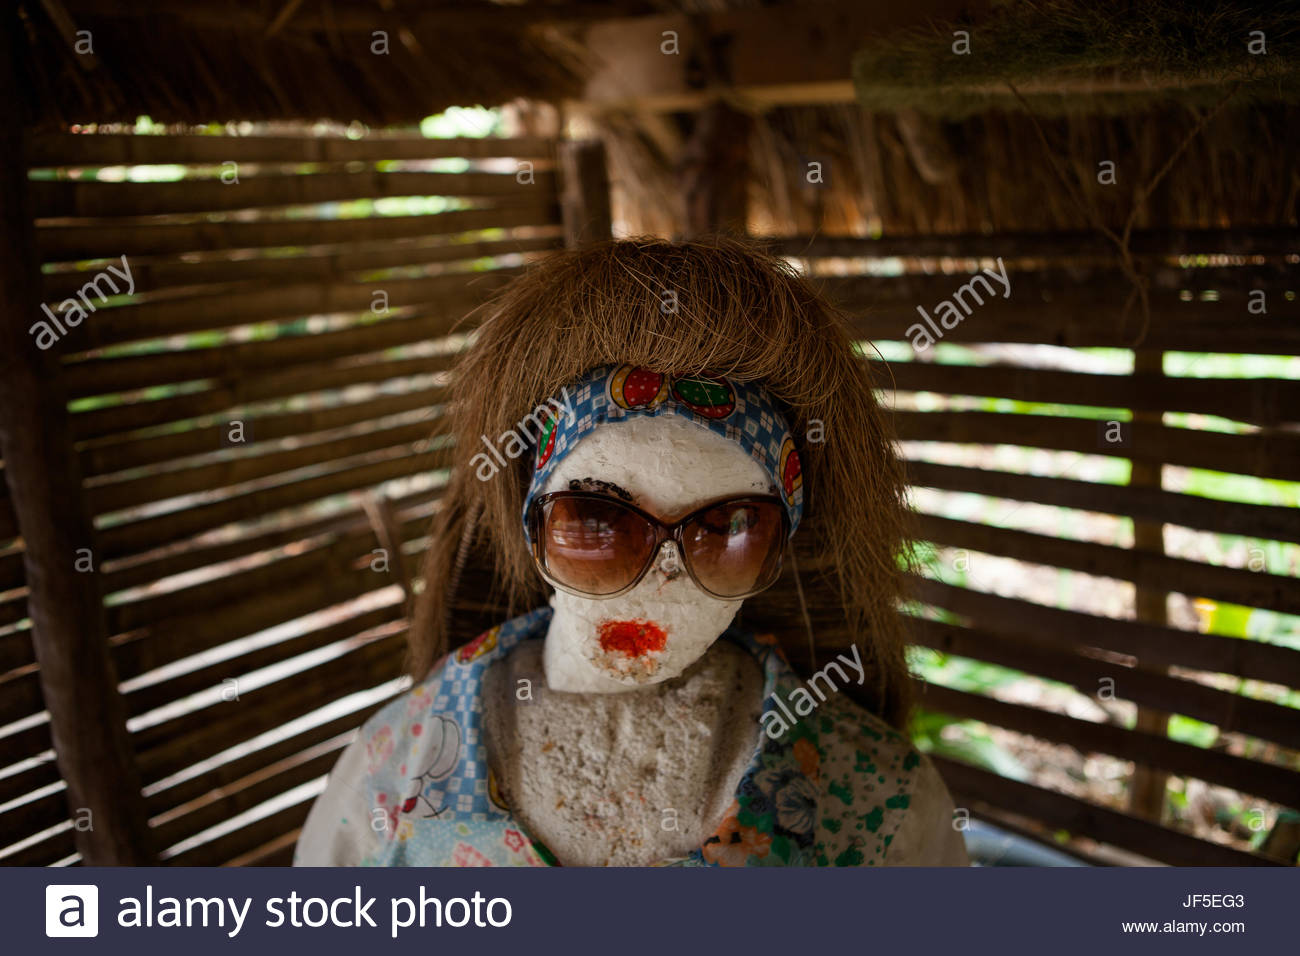 A makeshift mannequin sporting a vakul, headwear worn by Ivatans to protect themselves from rain and cold weather. - Stock Image